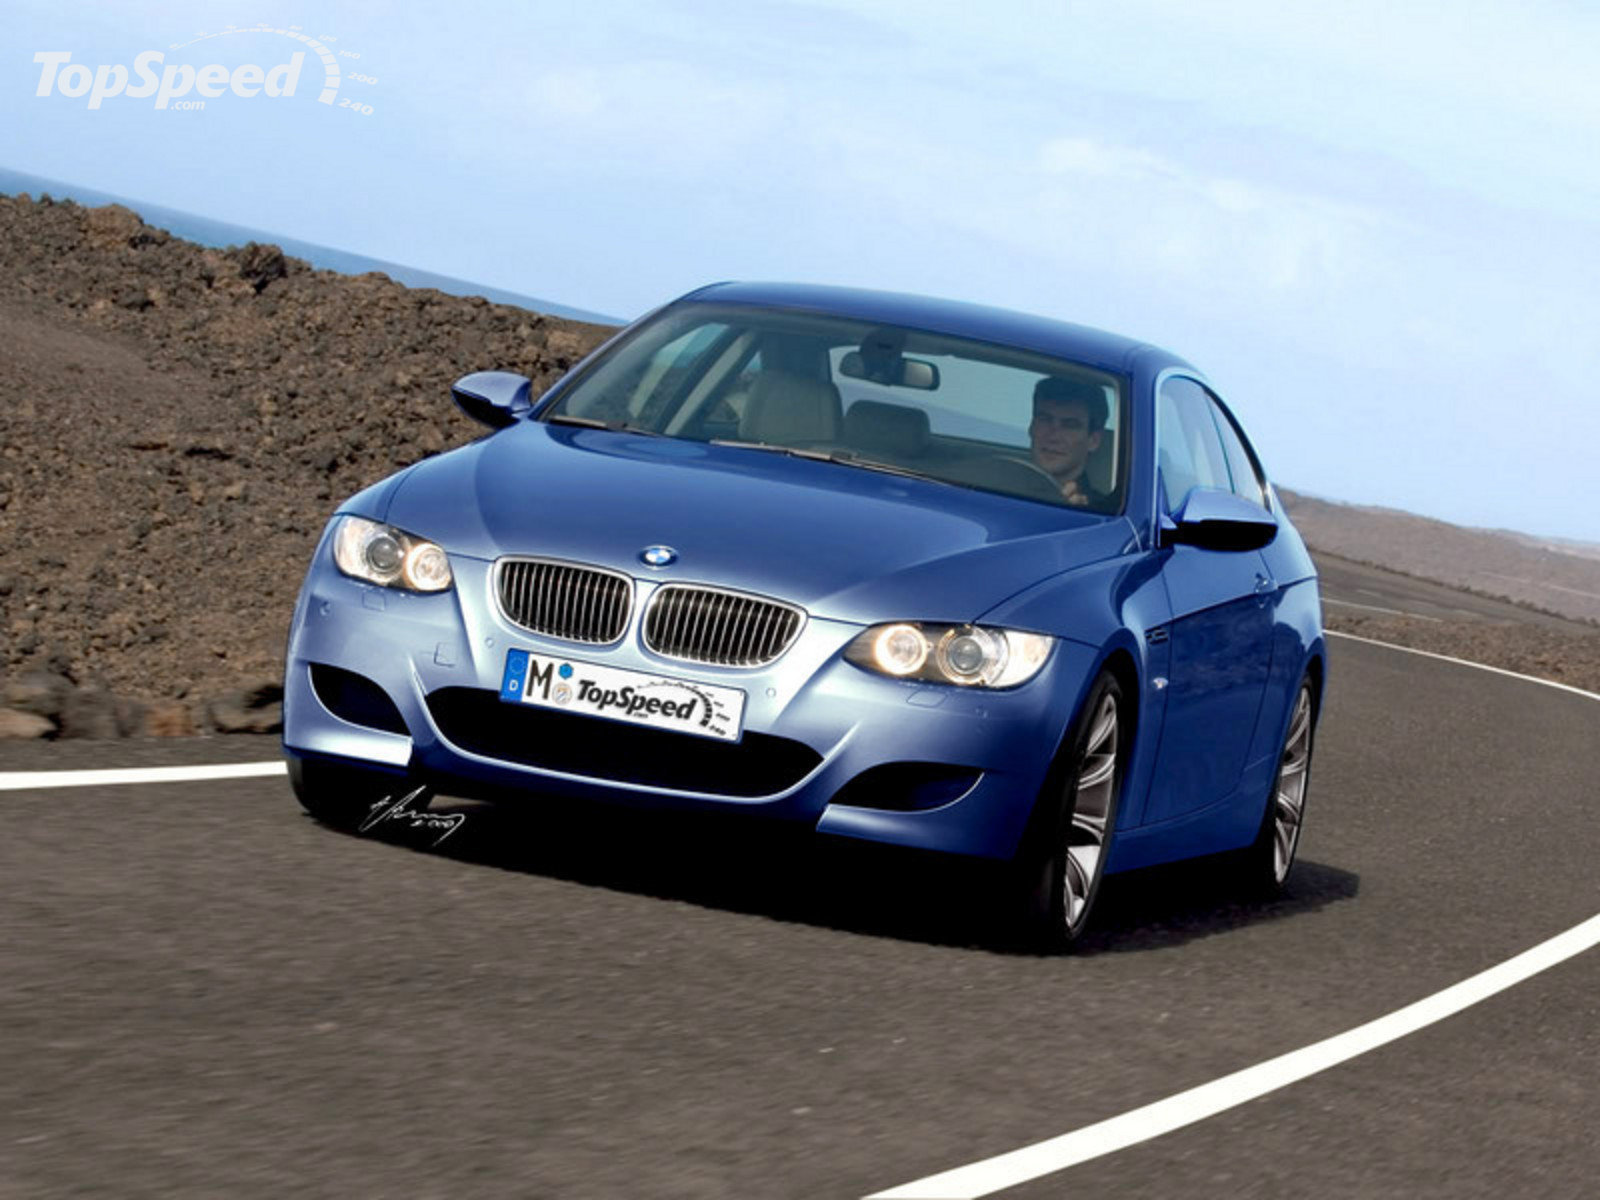 Bmw E90 Most Wanted Cars